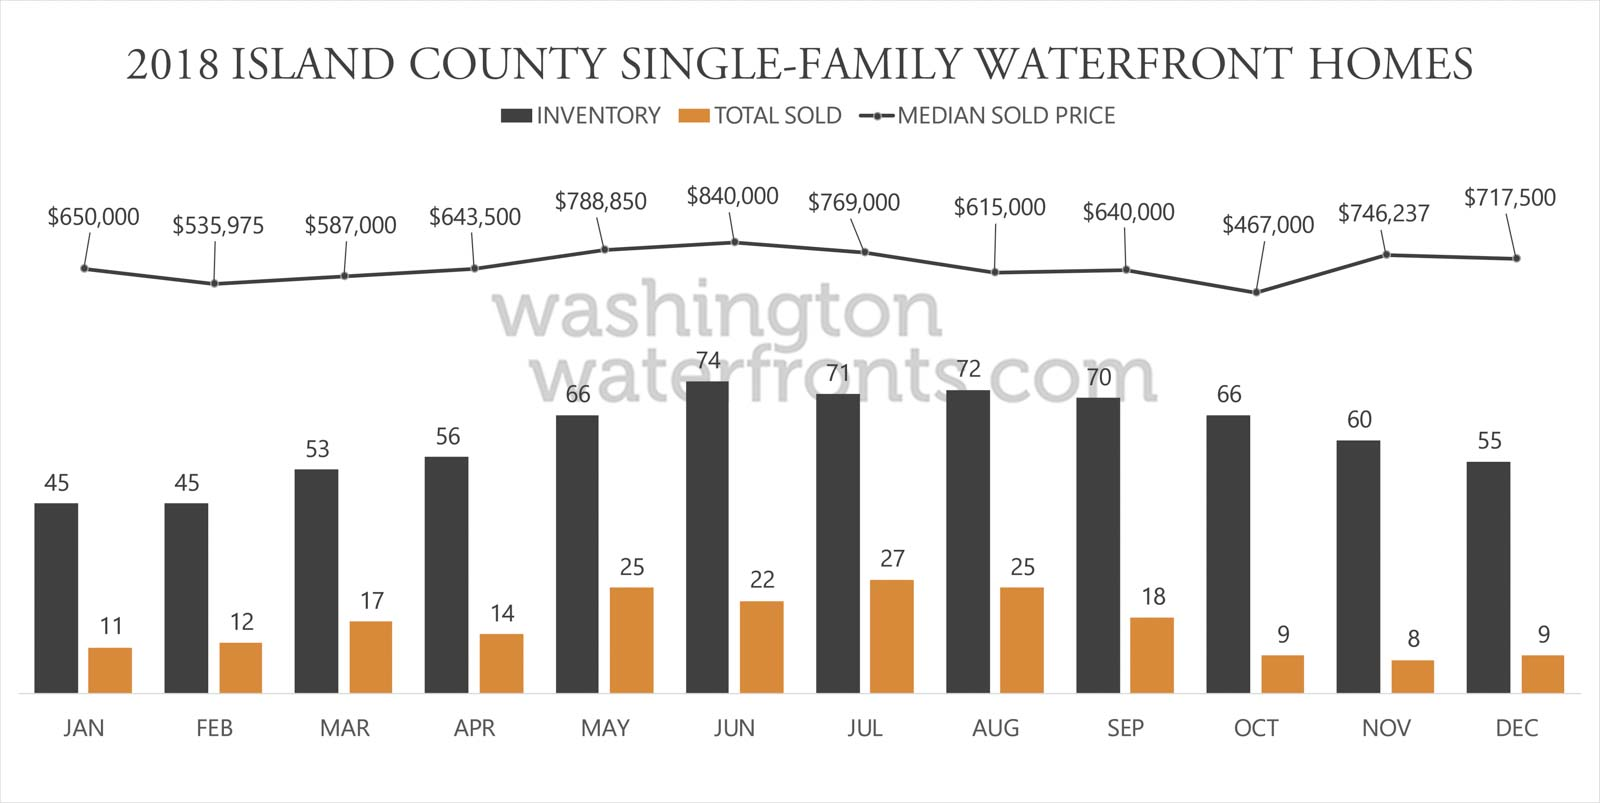 Island County Waterfront Inventory